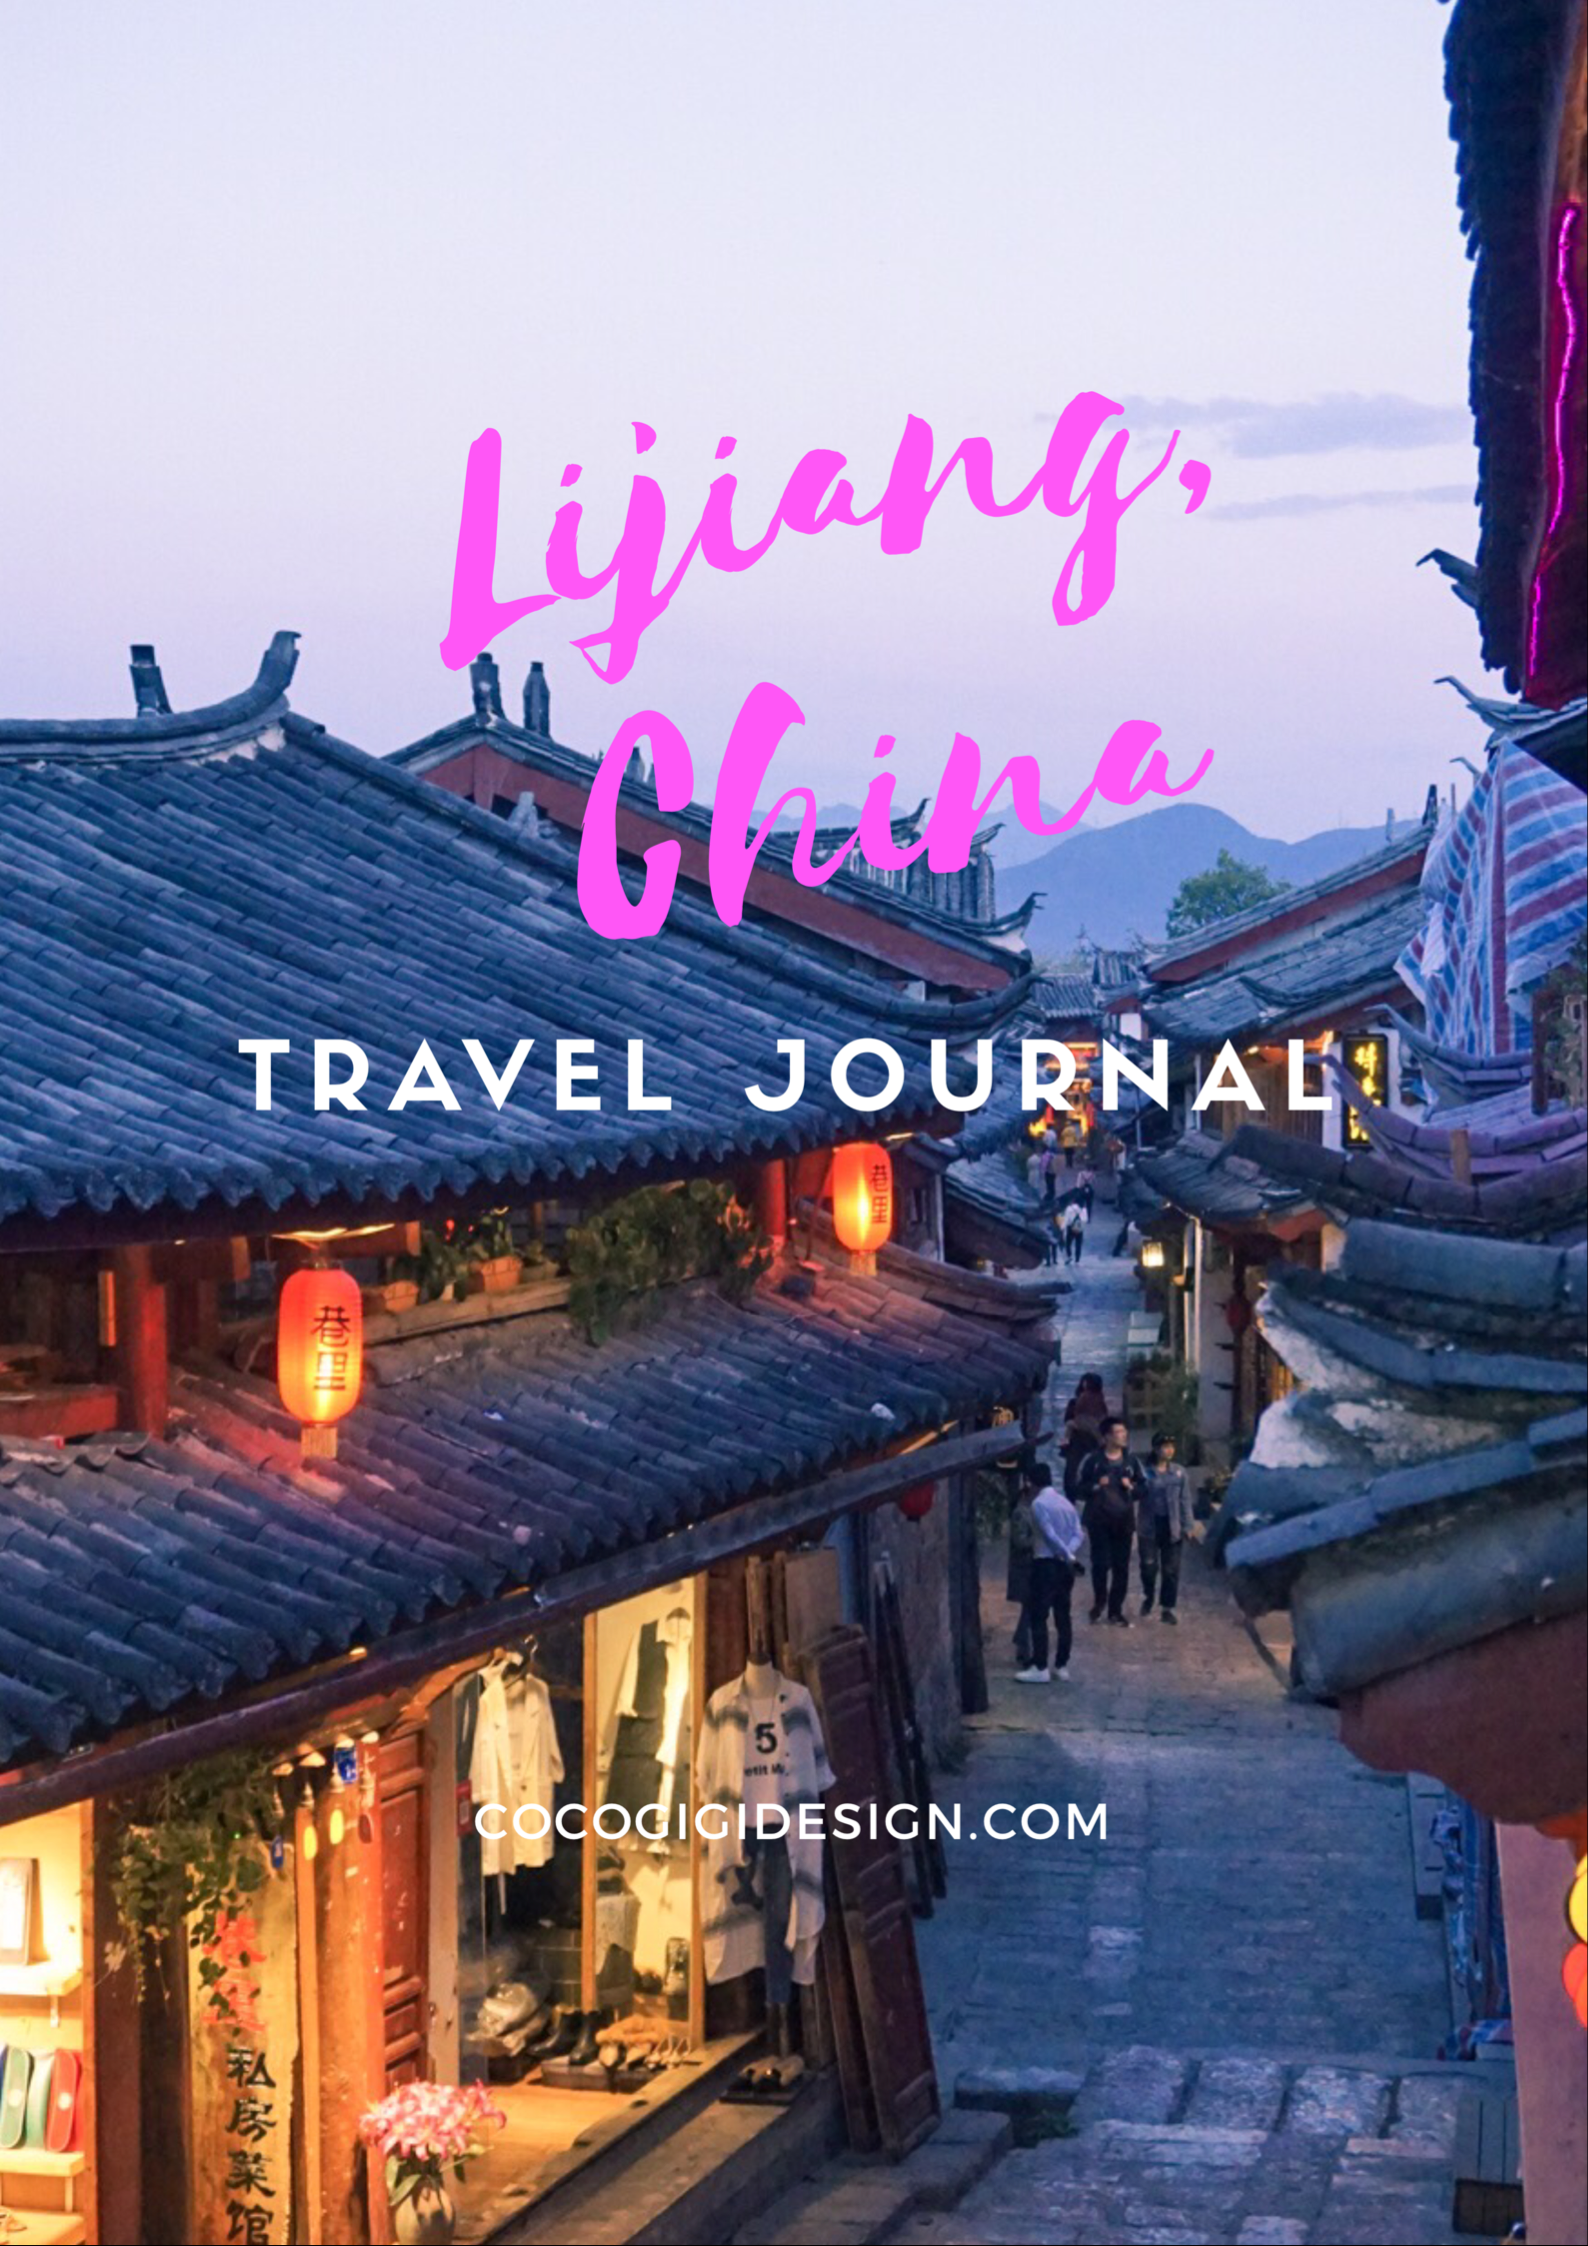 Gina Maldonado - Lijiang, China travel journal.PNG